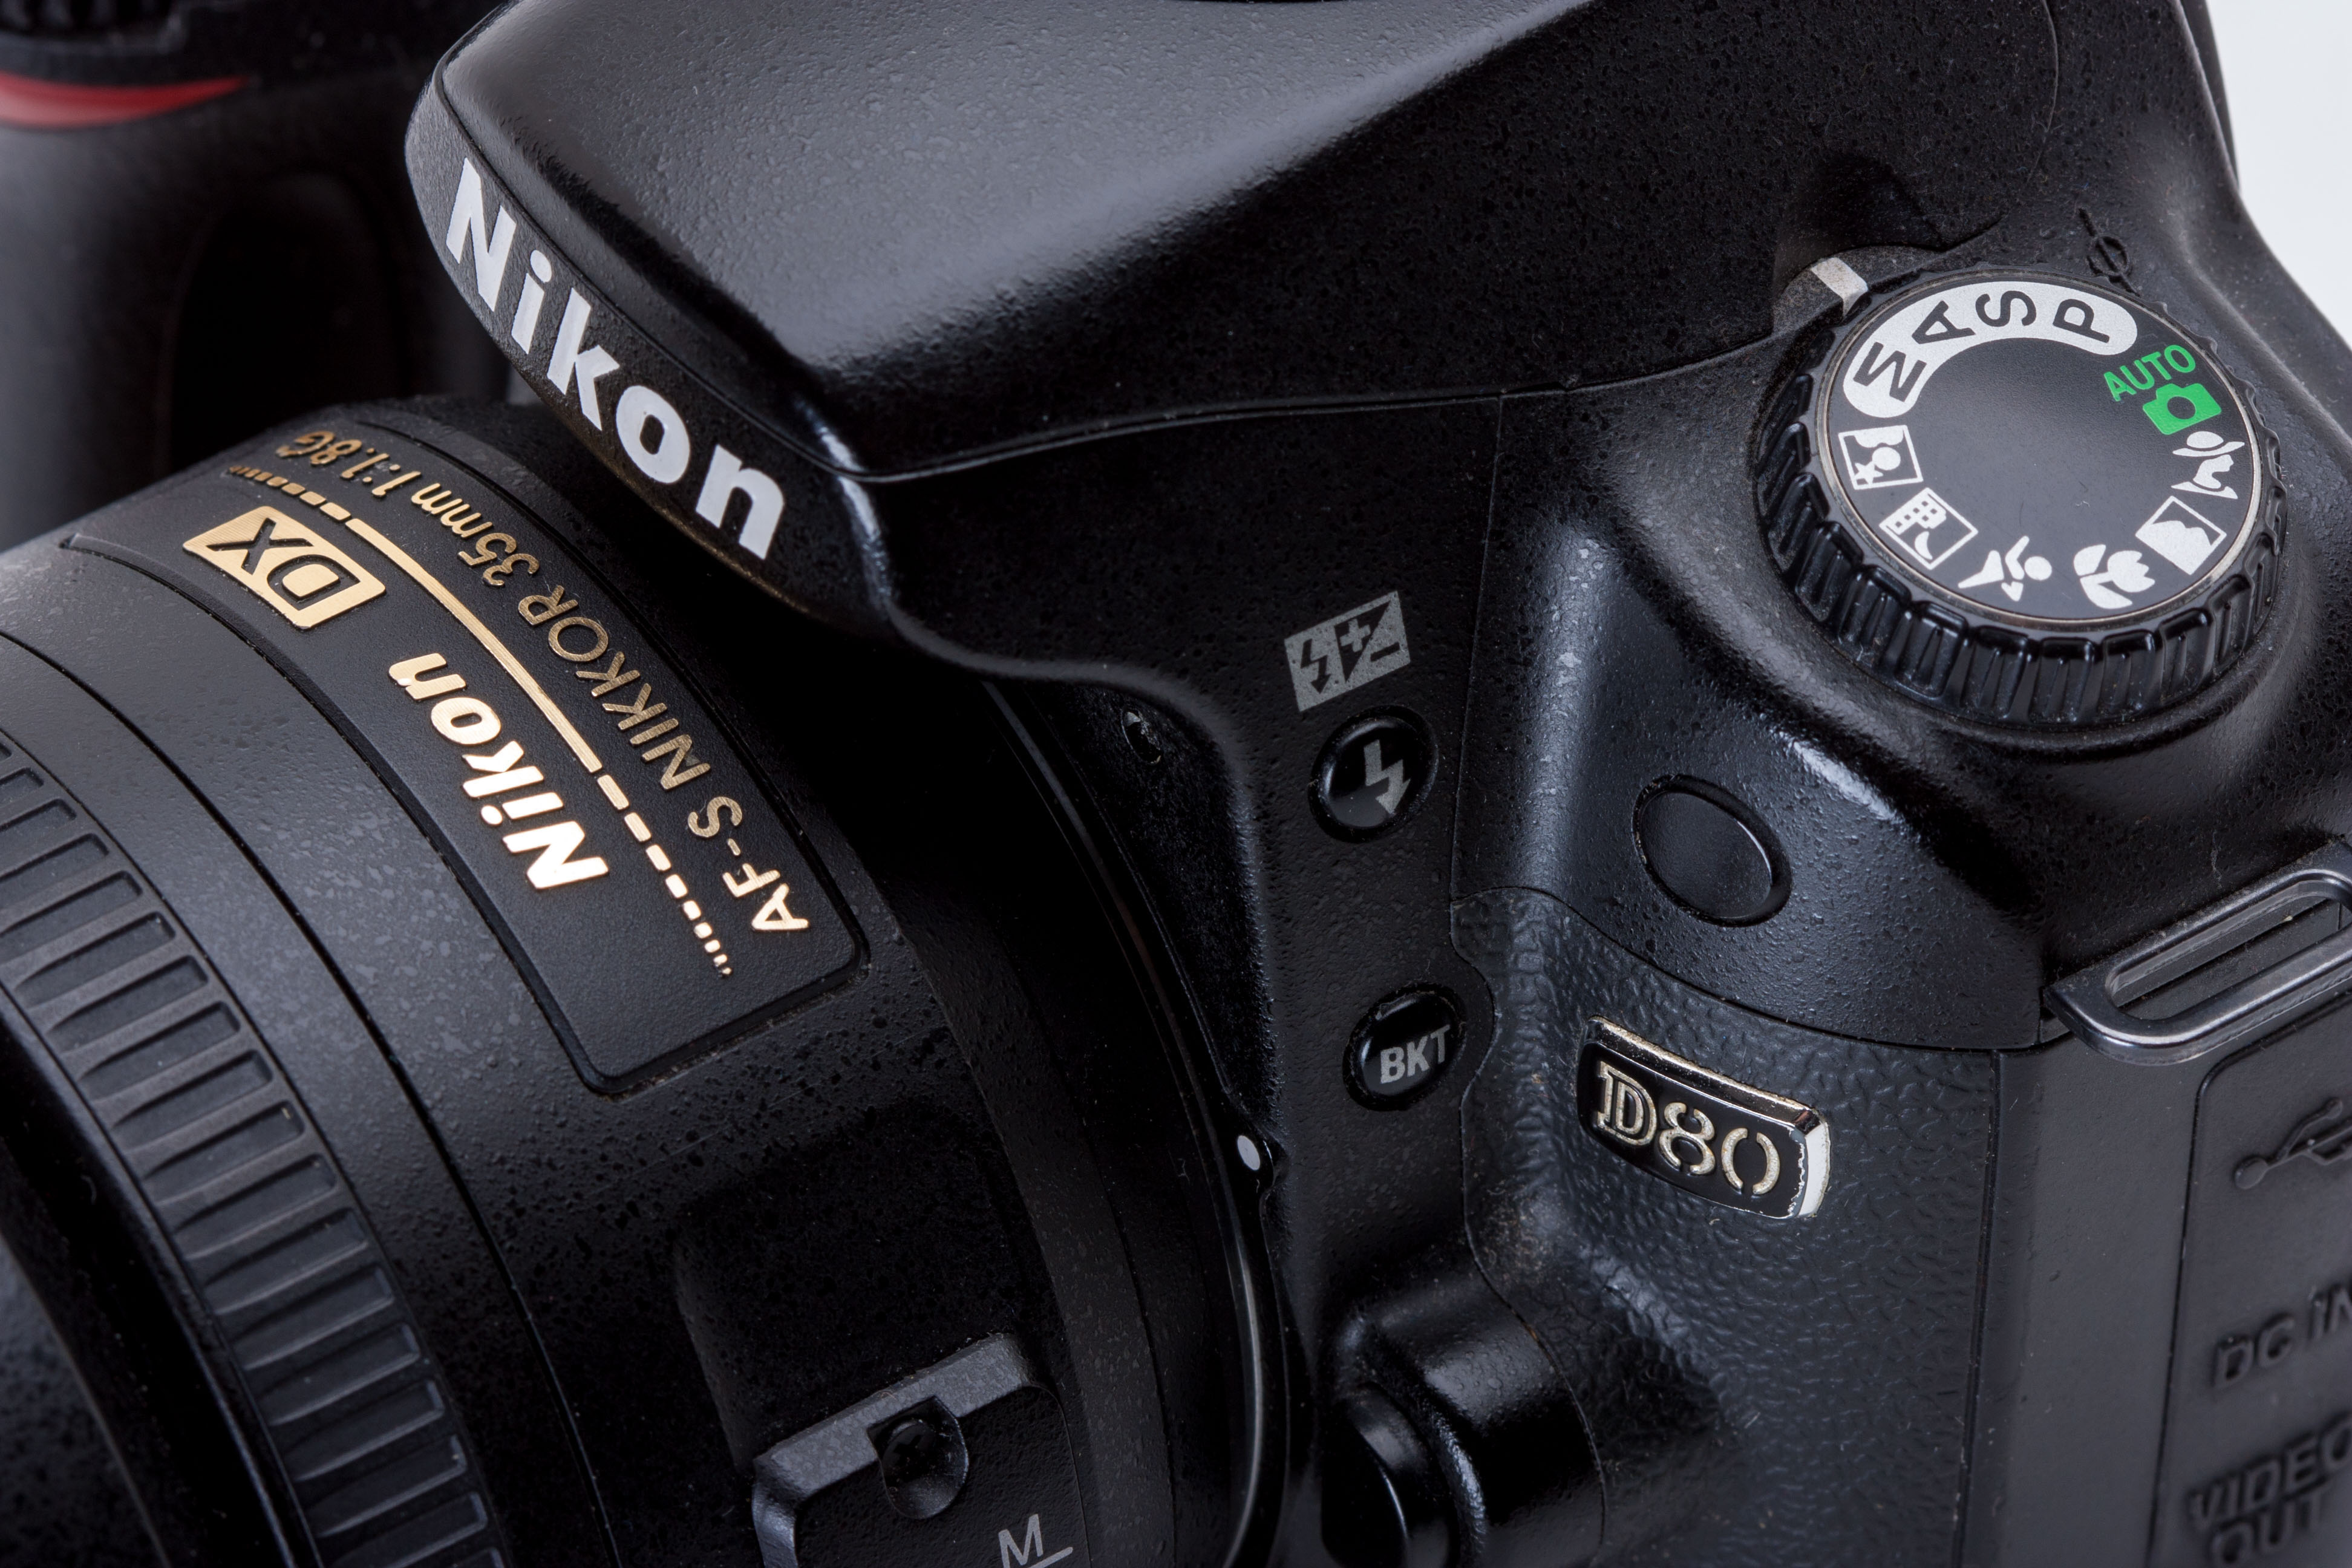 Sigma has done more for enthusiast APS-C than Nikon, Canon